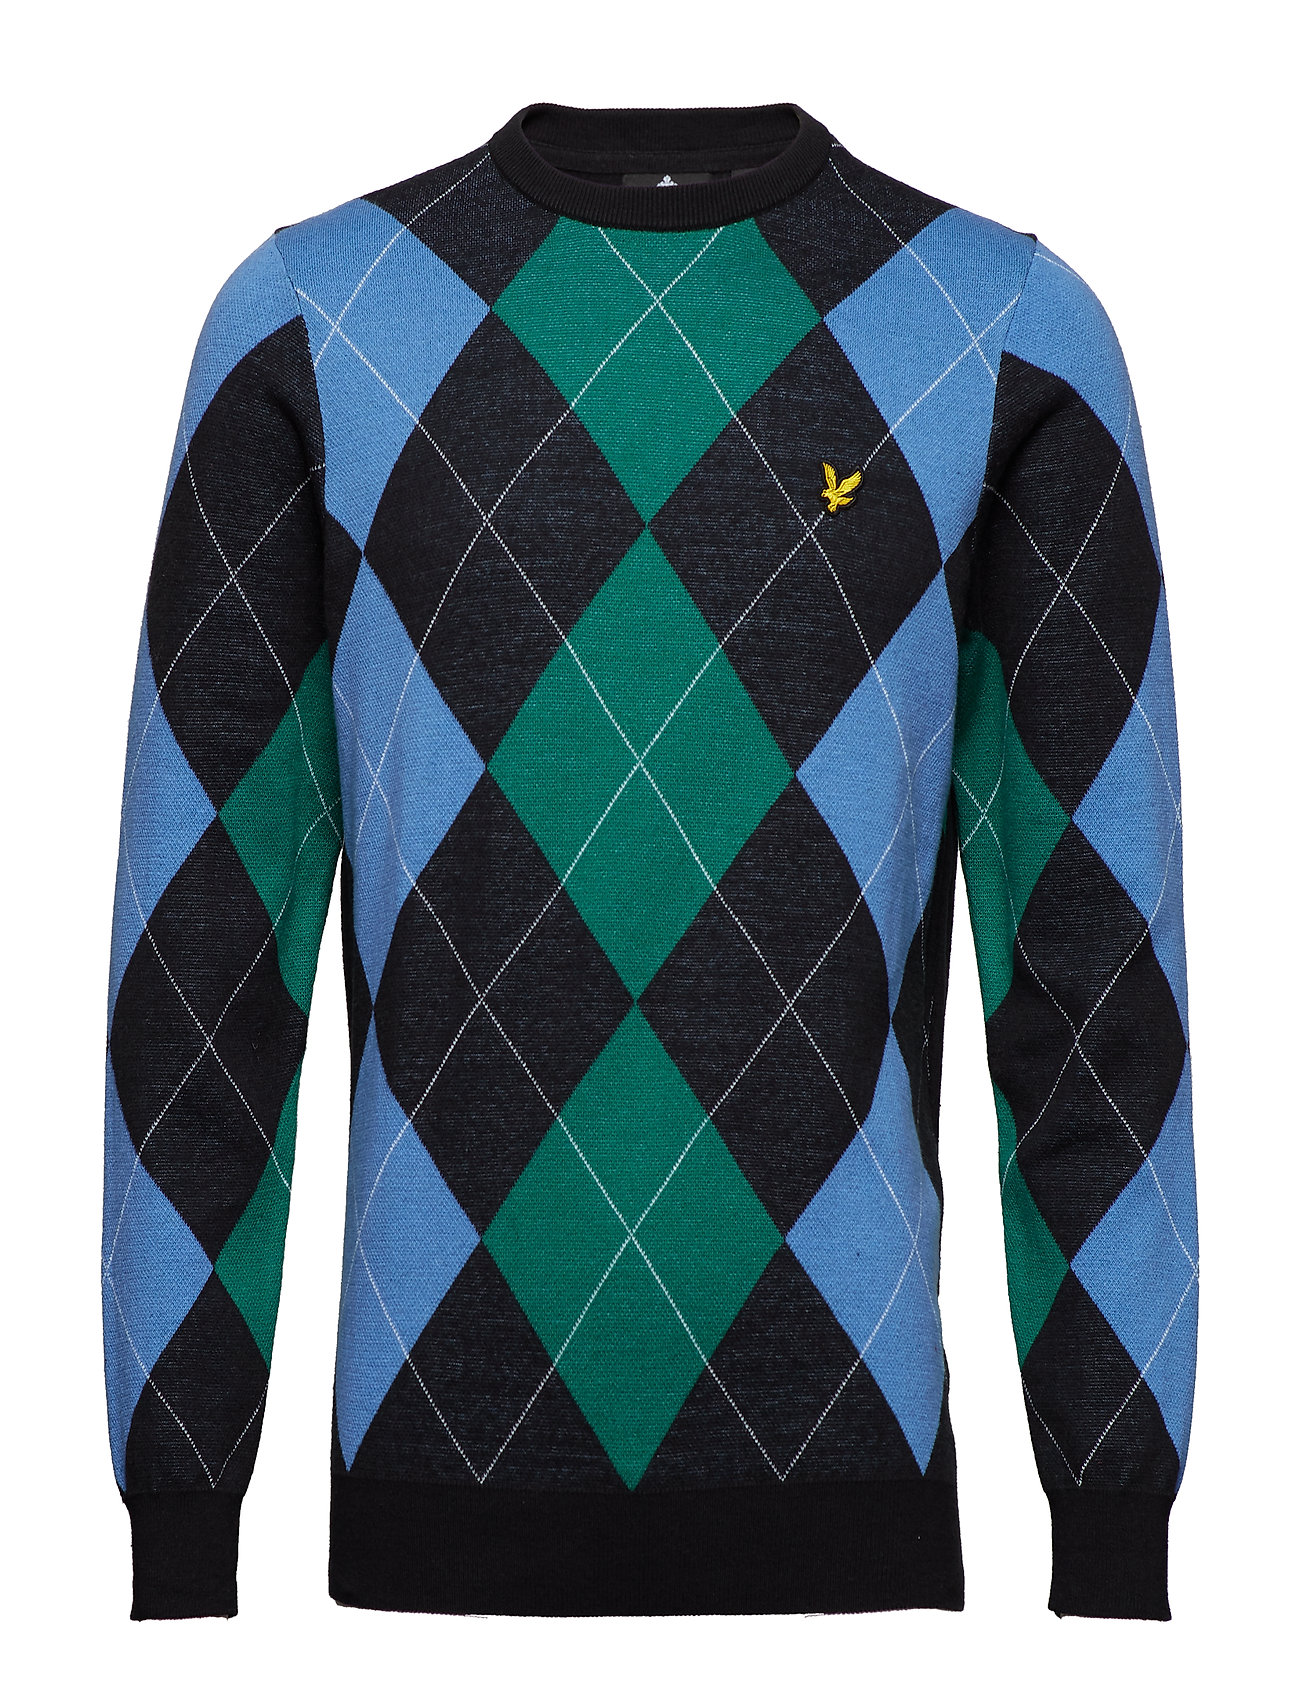 Lyle & Scott Argyle Jumper - TRUE BLACK